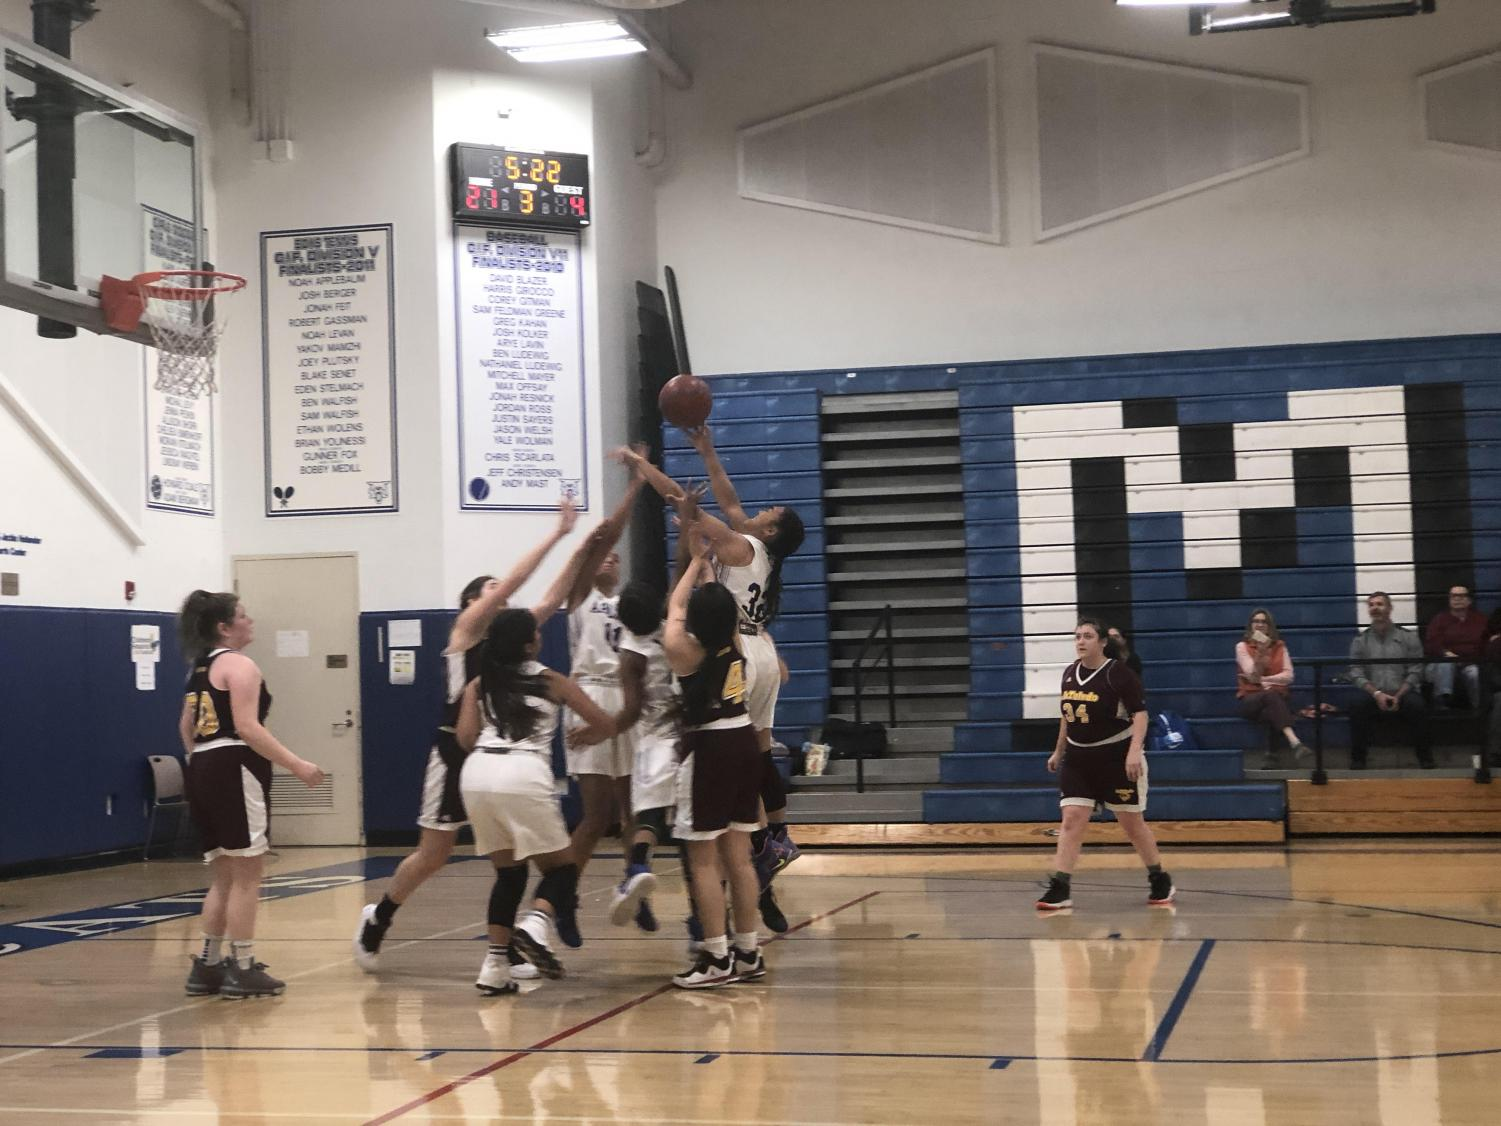 The varsity basketball team plays the de Toledo team at the Milken Classic Tournament on Dec. 4. Archer won the game 38-13.